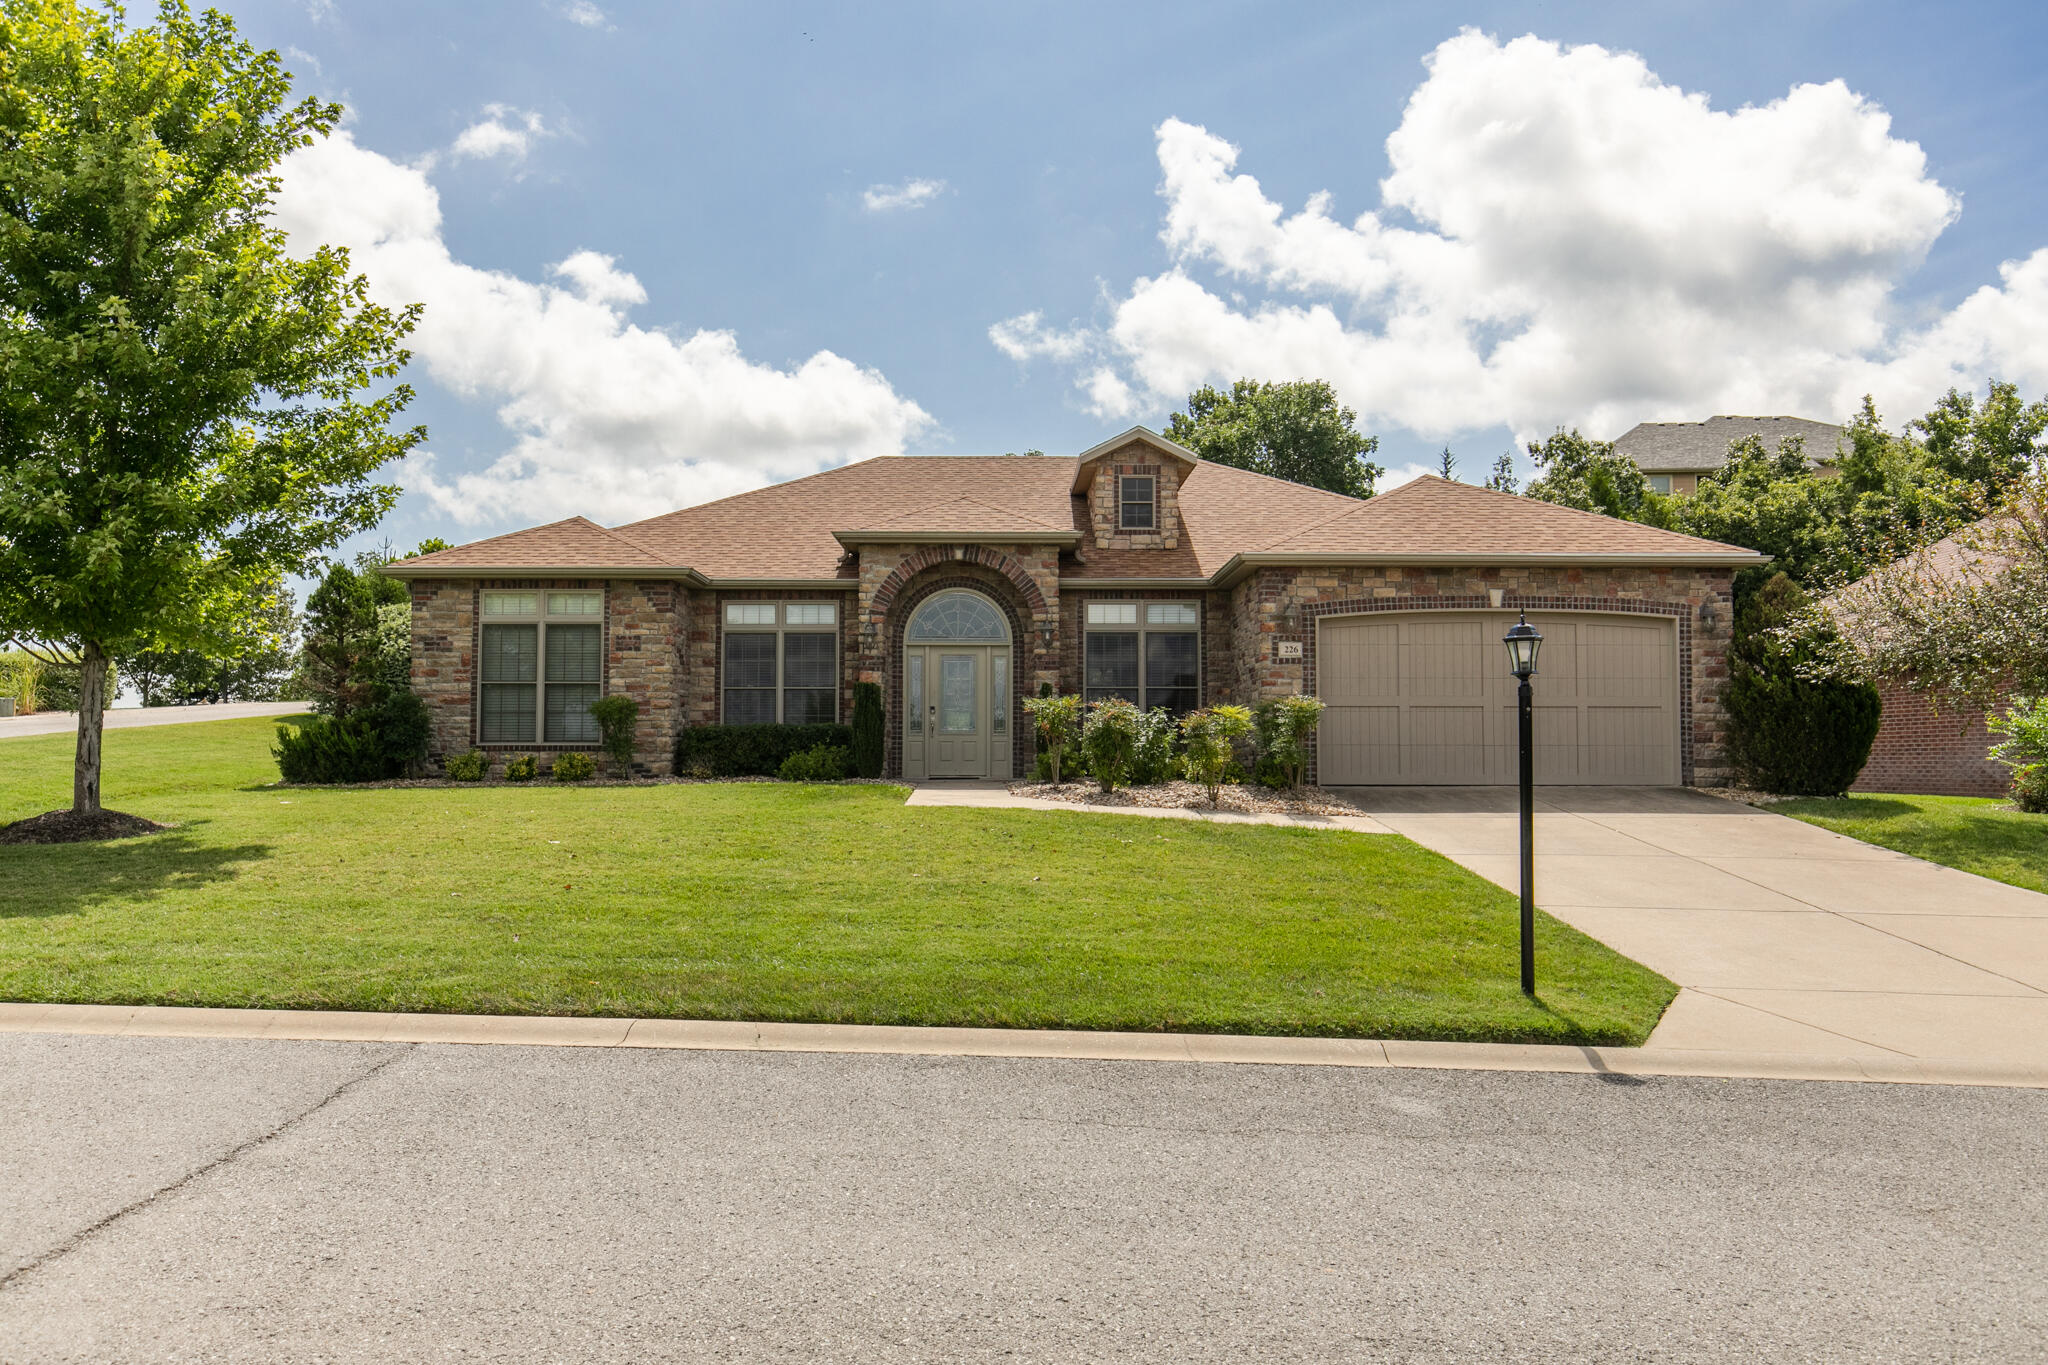 226 Stoney Pointe Drive Hollister, MO 65672